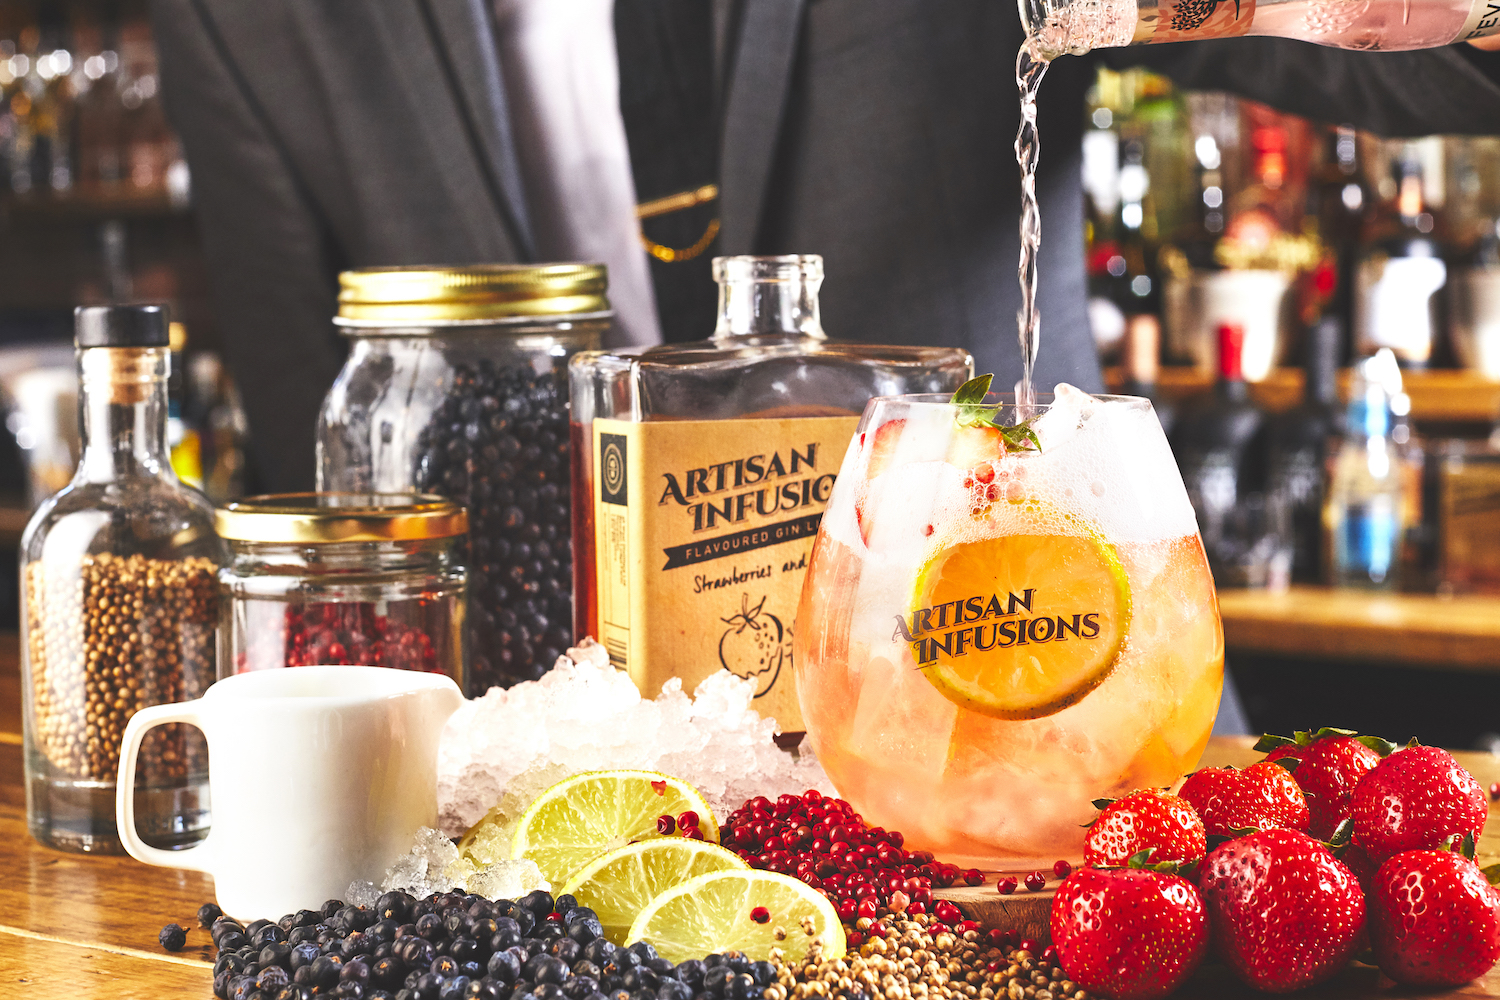 Artisan Infusions Launch Campaign 171 RE.jpg